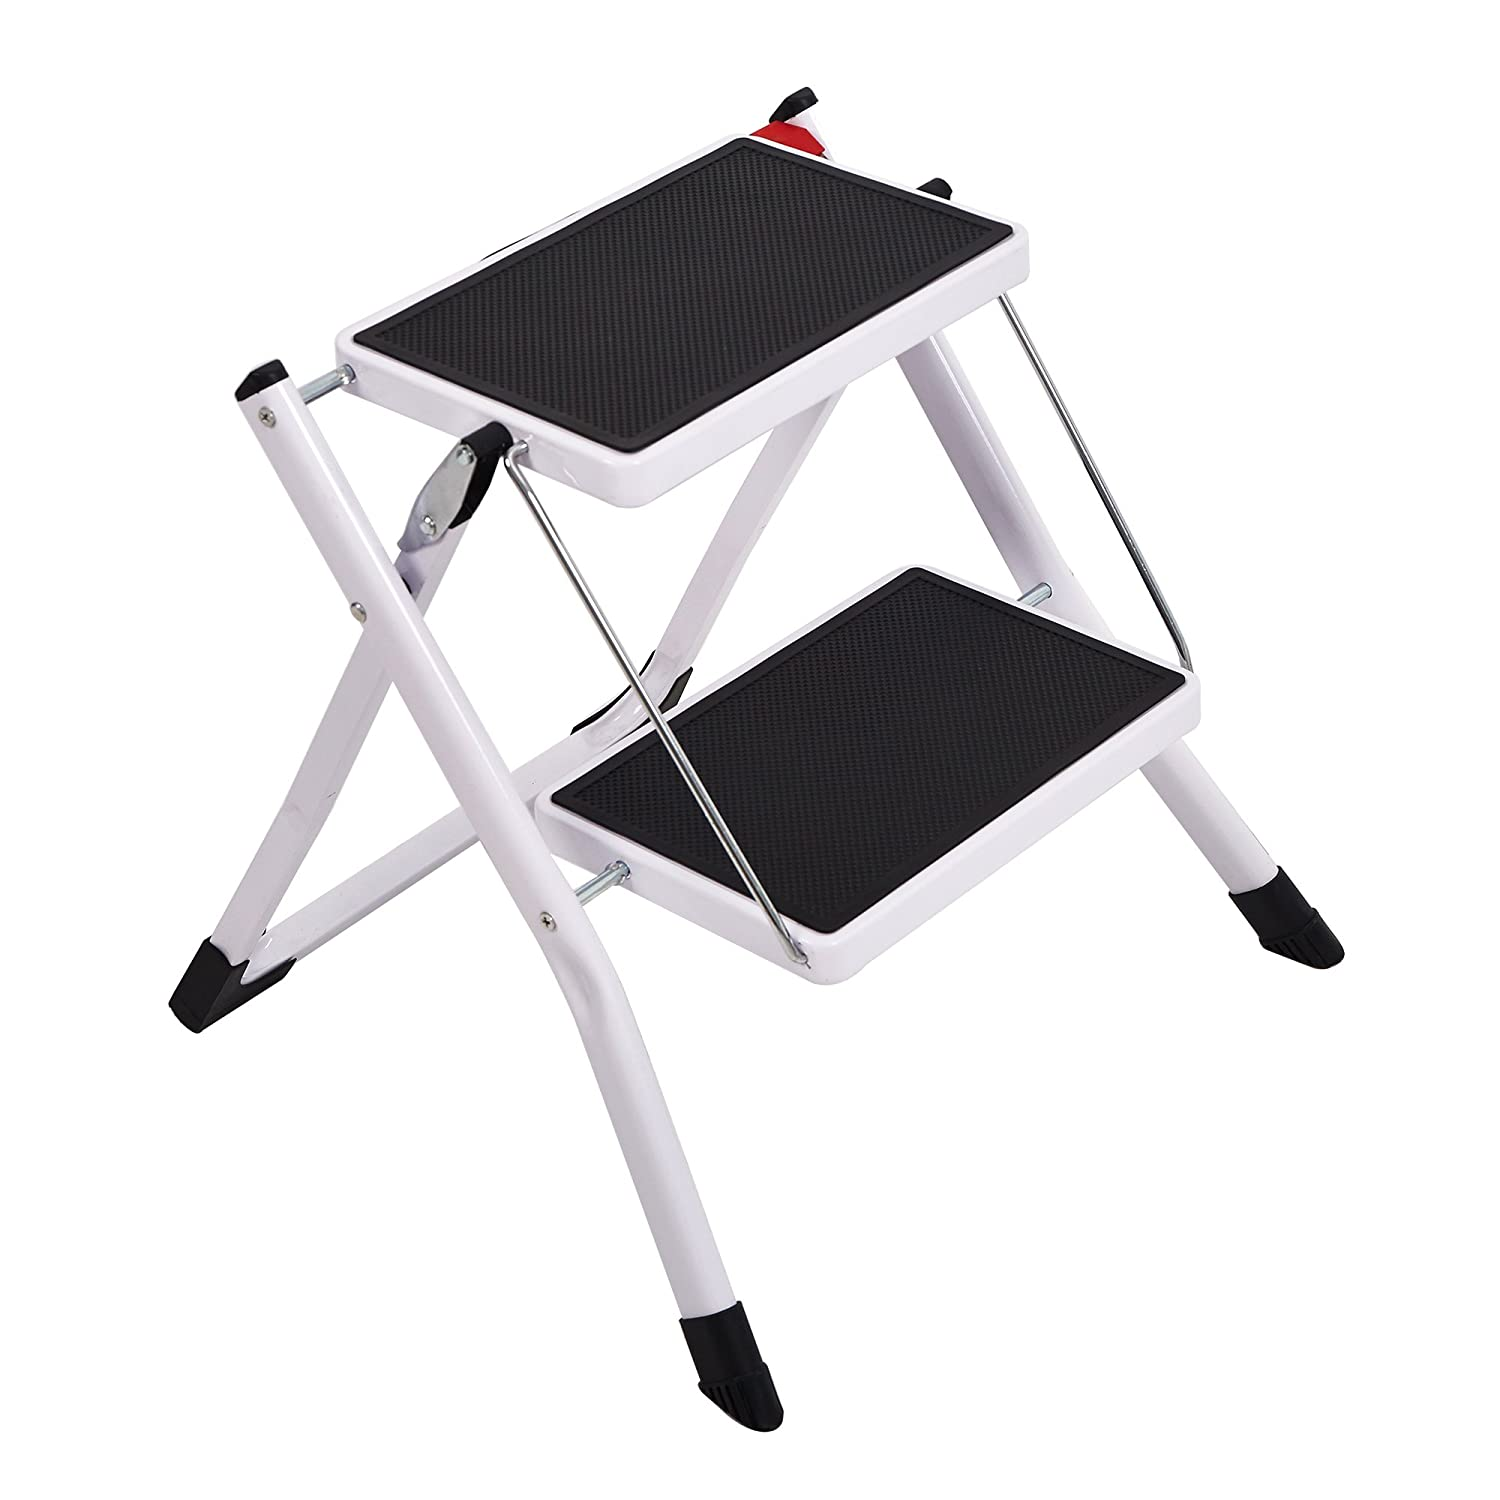 Surprising Foldable Step Stool Wide Pedal Small Step Ladder 2 Step Home Kitchen Ibusinesslaw Wood Chair Design Ideas Ibusinesslaworg